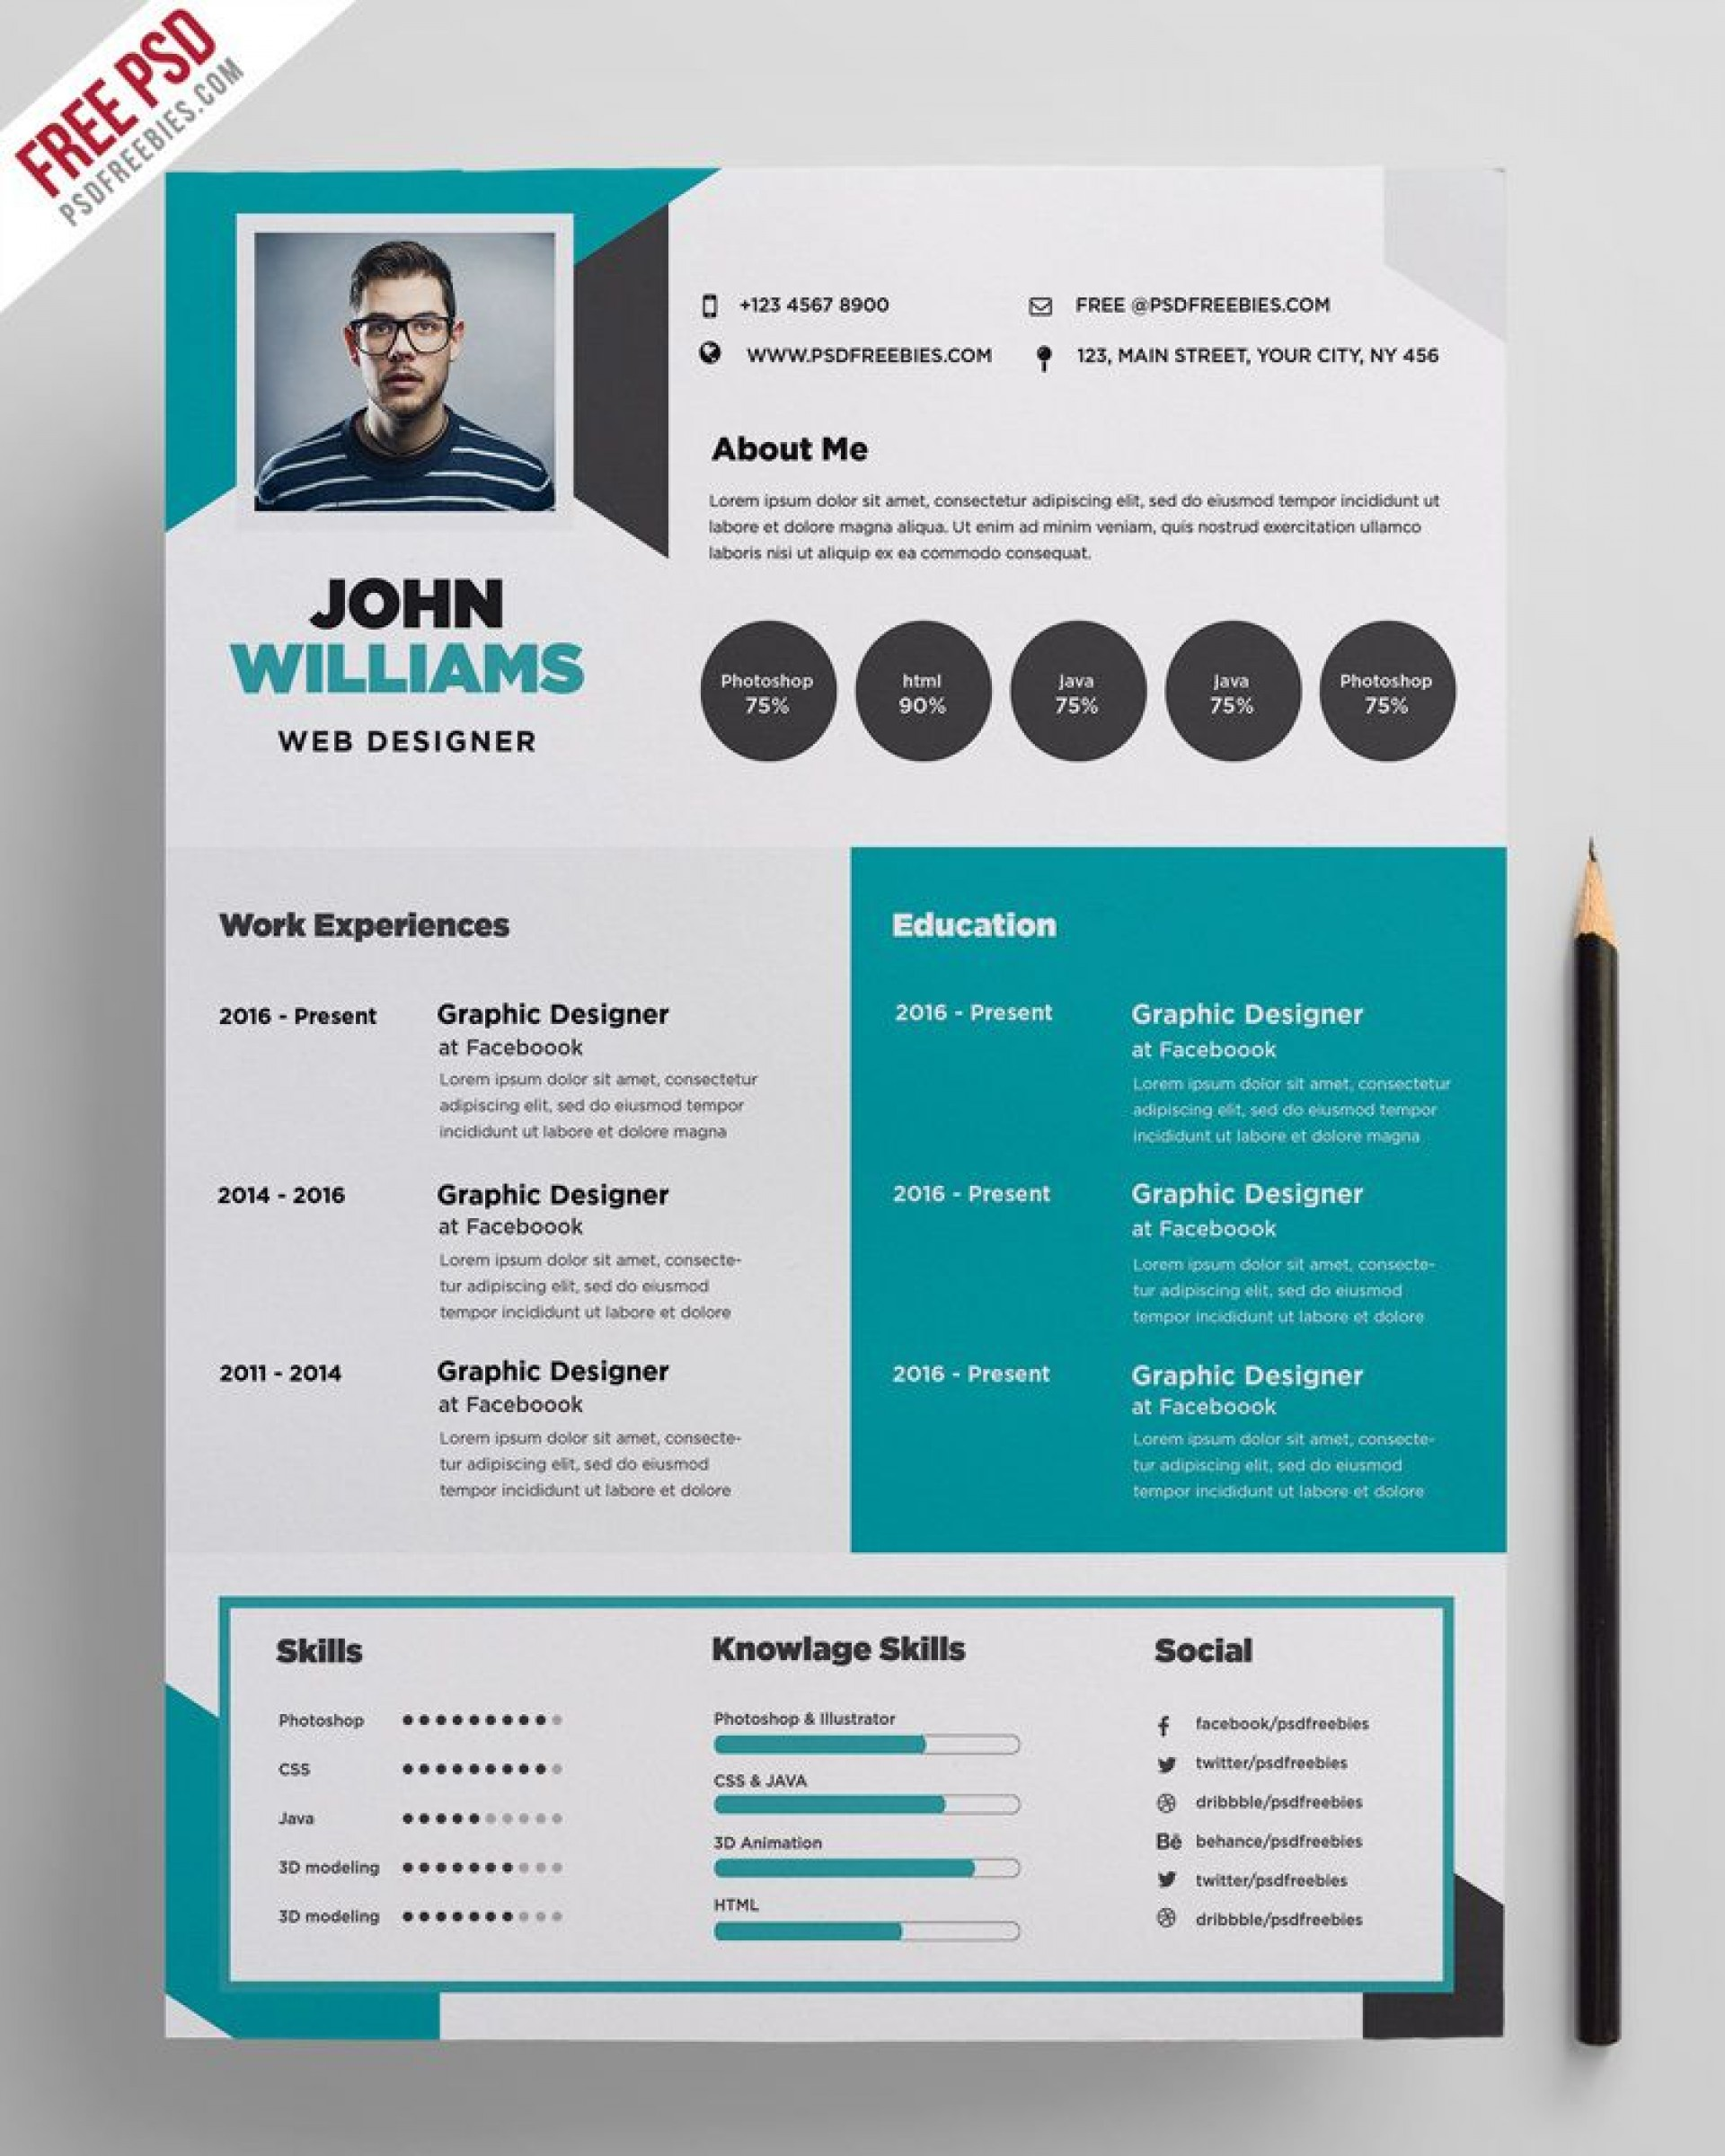 004 Formidable Free Psd Resume Template Highest Quality  Templates Attractive Download Creative (psd Id) Curriculum Vitae1920